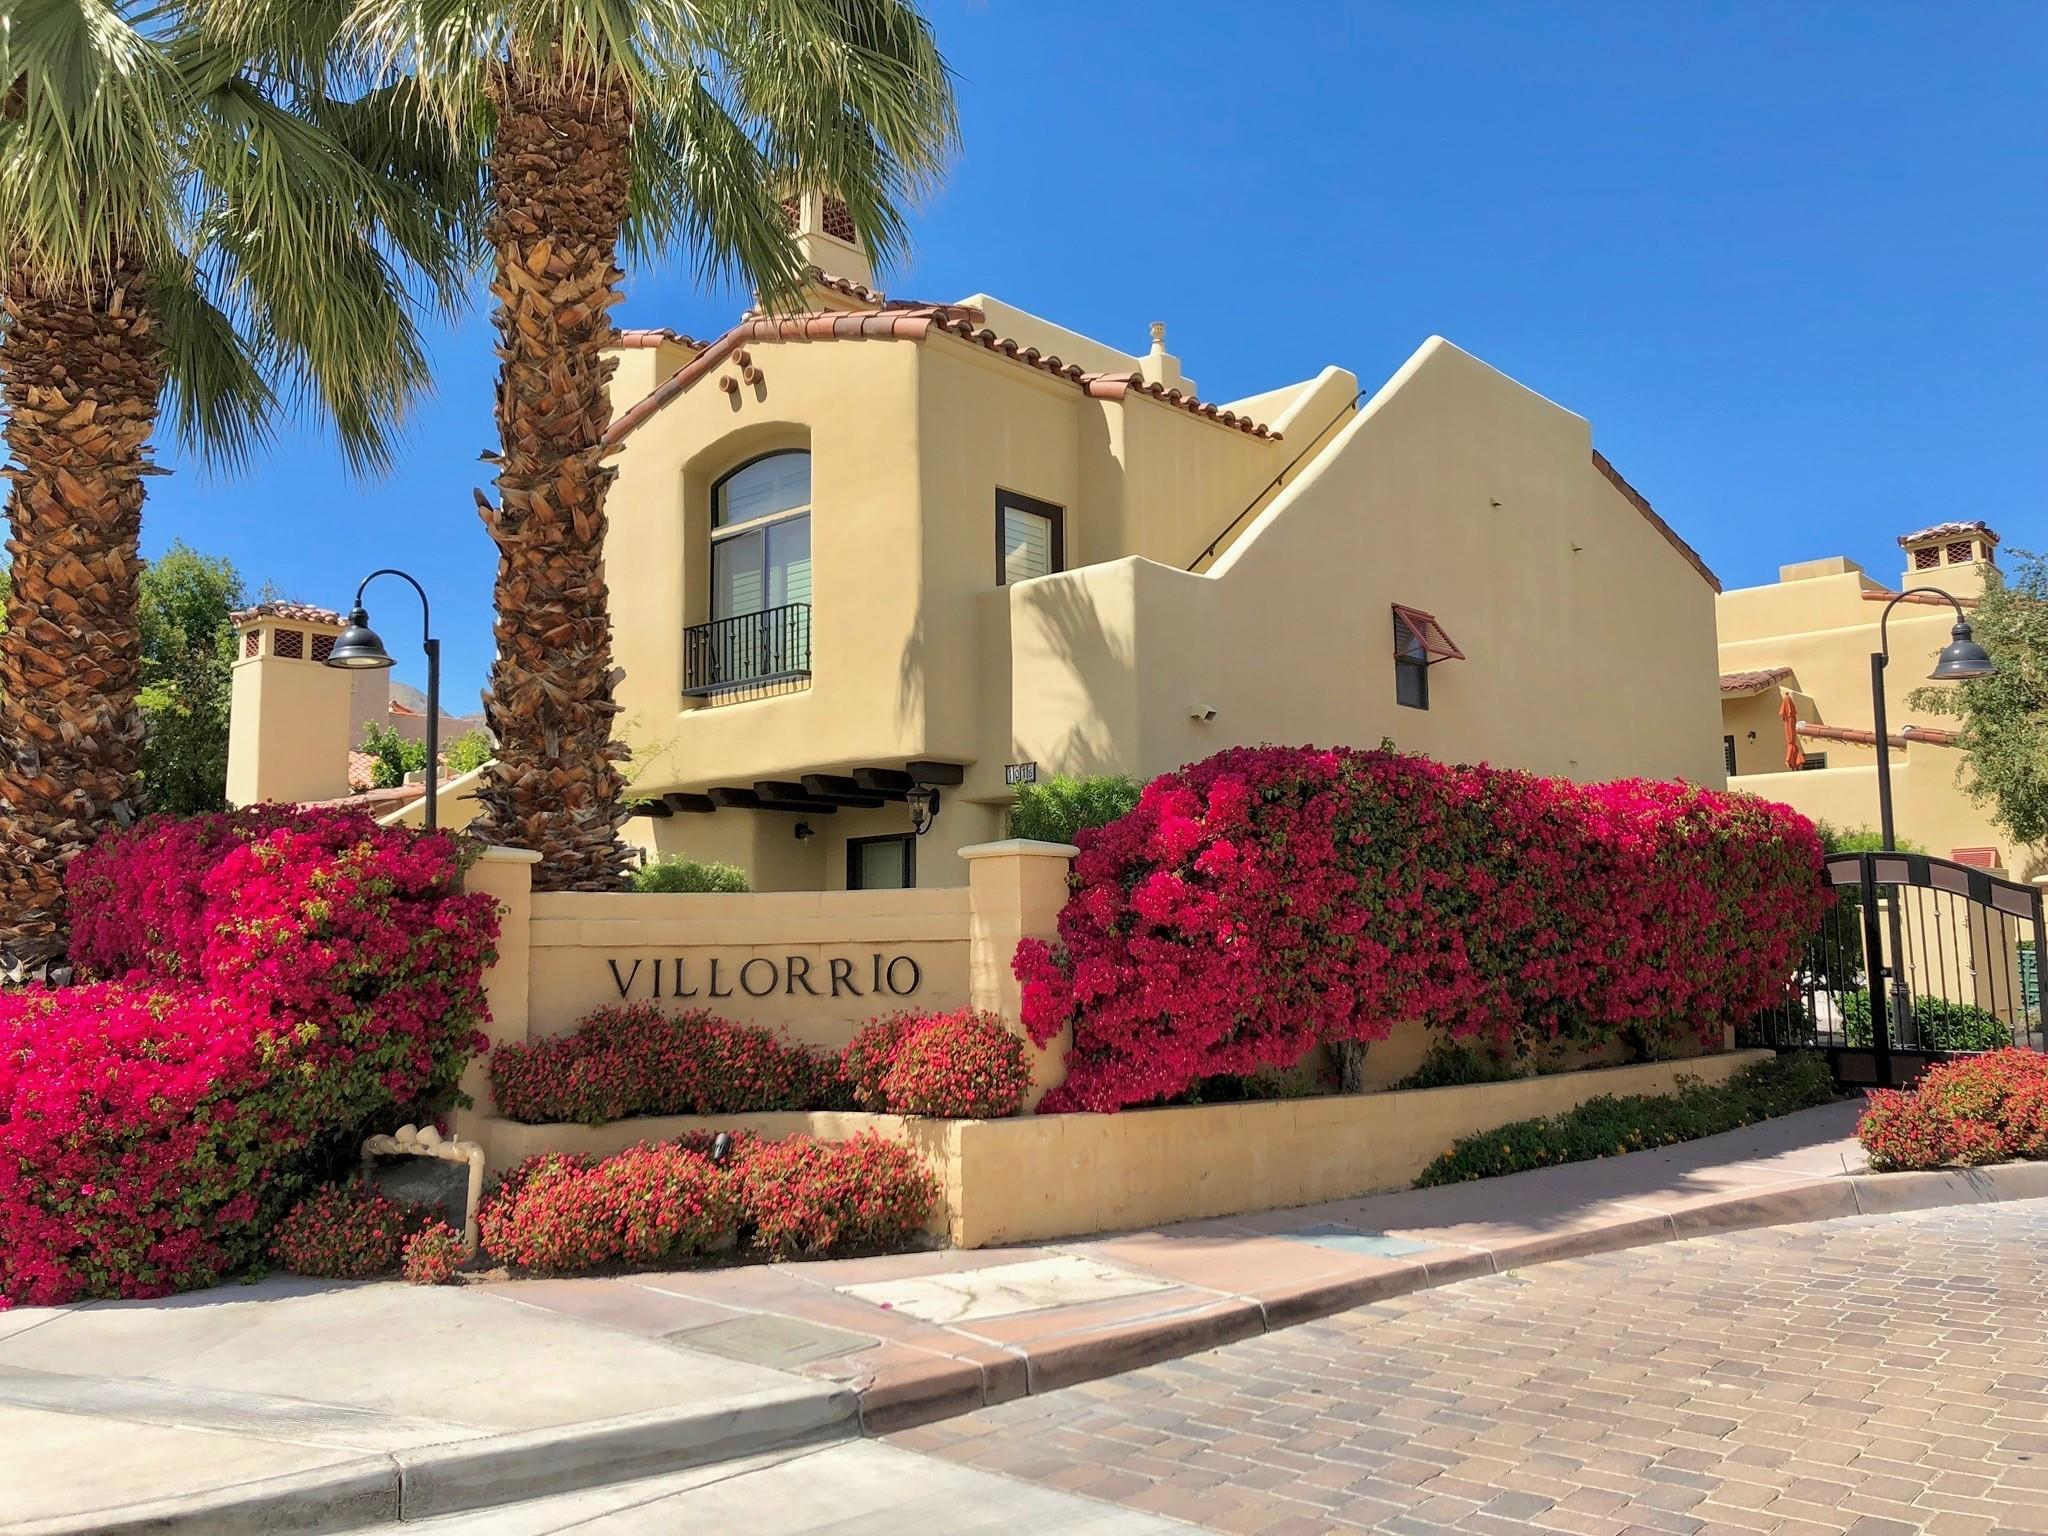 Photo of 233 Villorrio Drive #33, Palm Springs, CA 92262